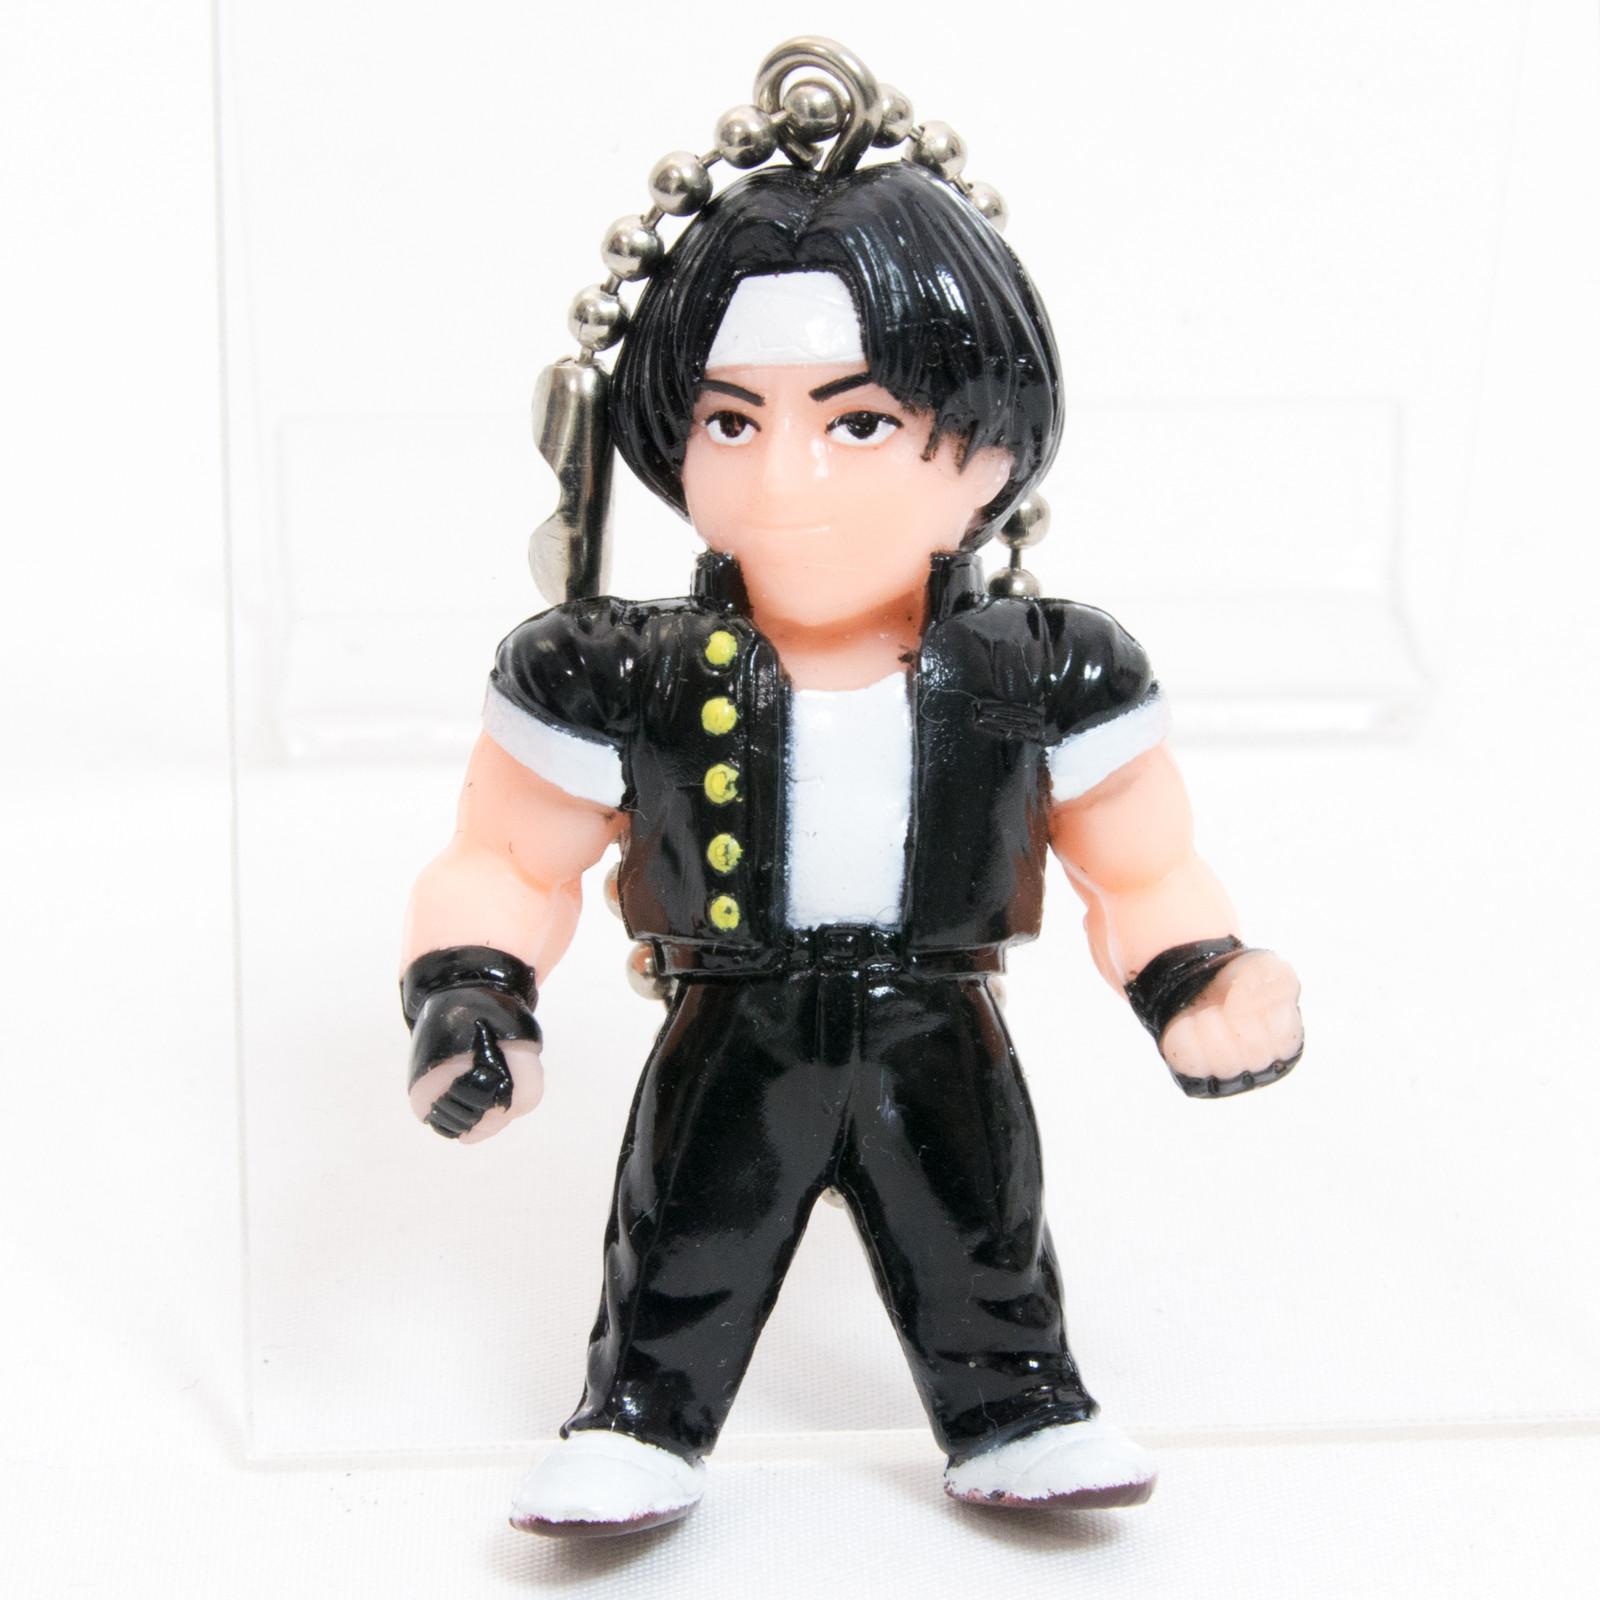 KOF King of Fighters Kyo Kusanagi Figure Keychain SNK JAPAN GAME